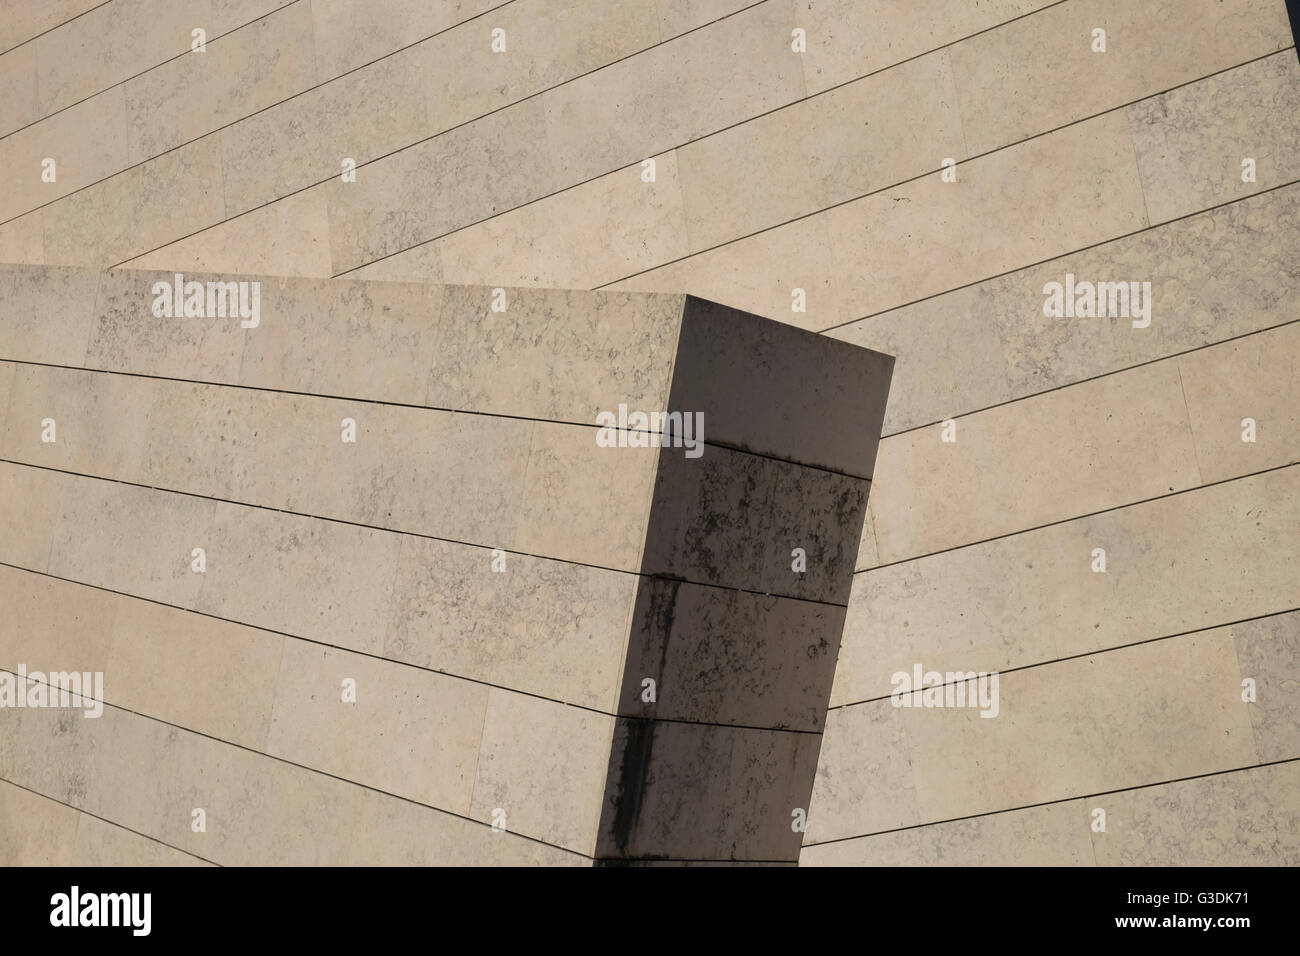 Close up architectural detail of modern building - Stock Image